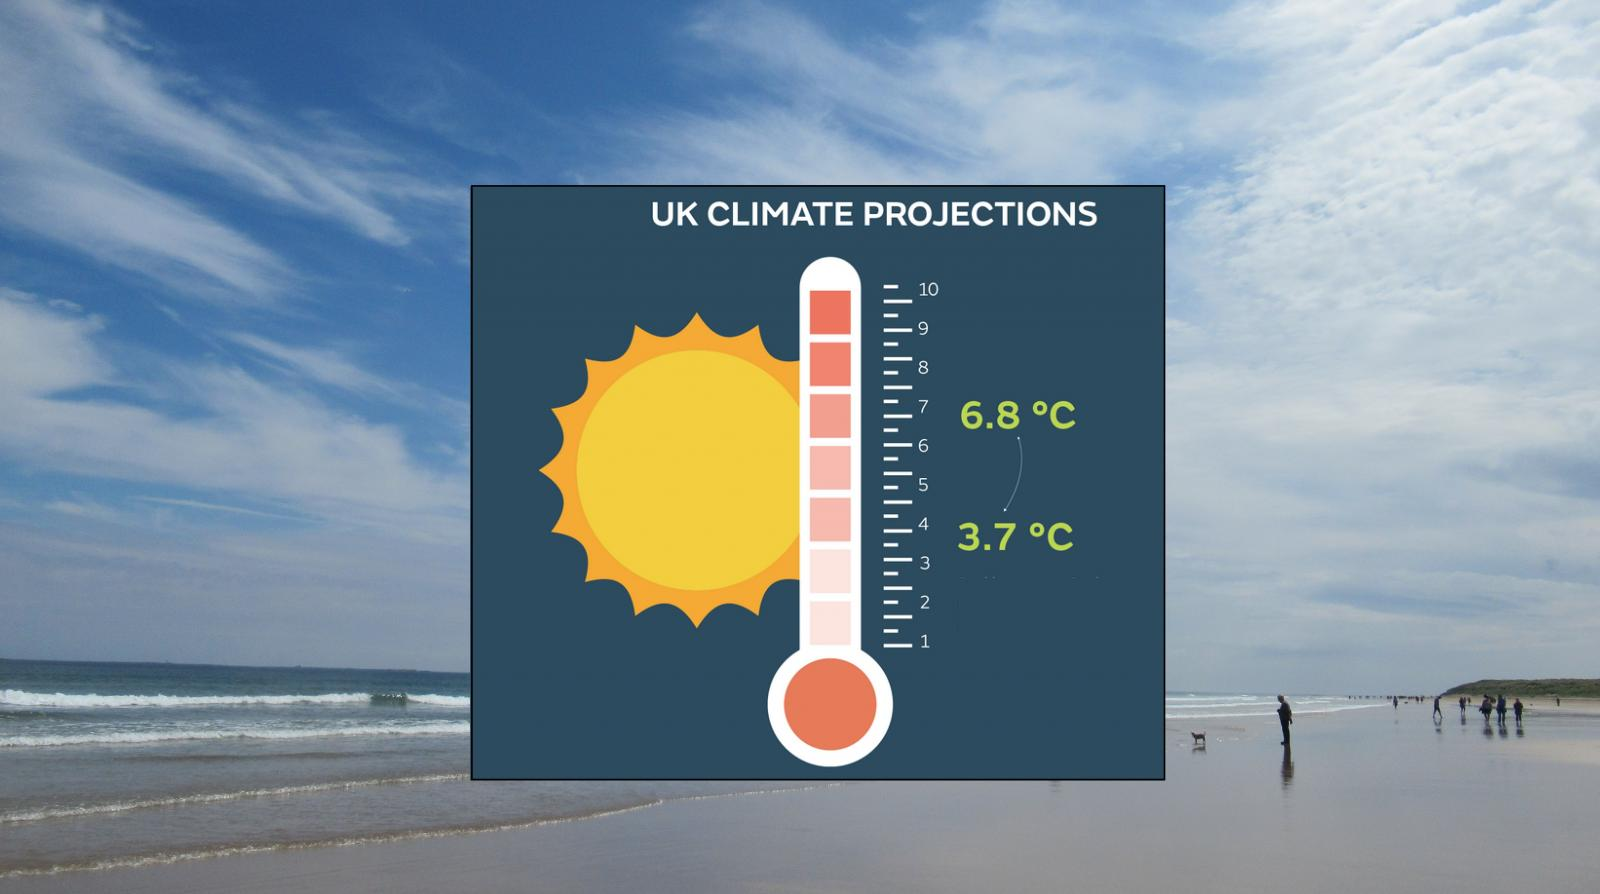 Summer 2019 records  and statistics. Future climate predictions for UK temperatures